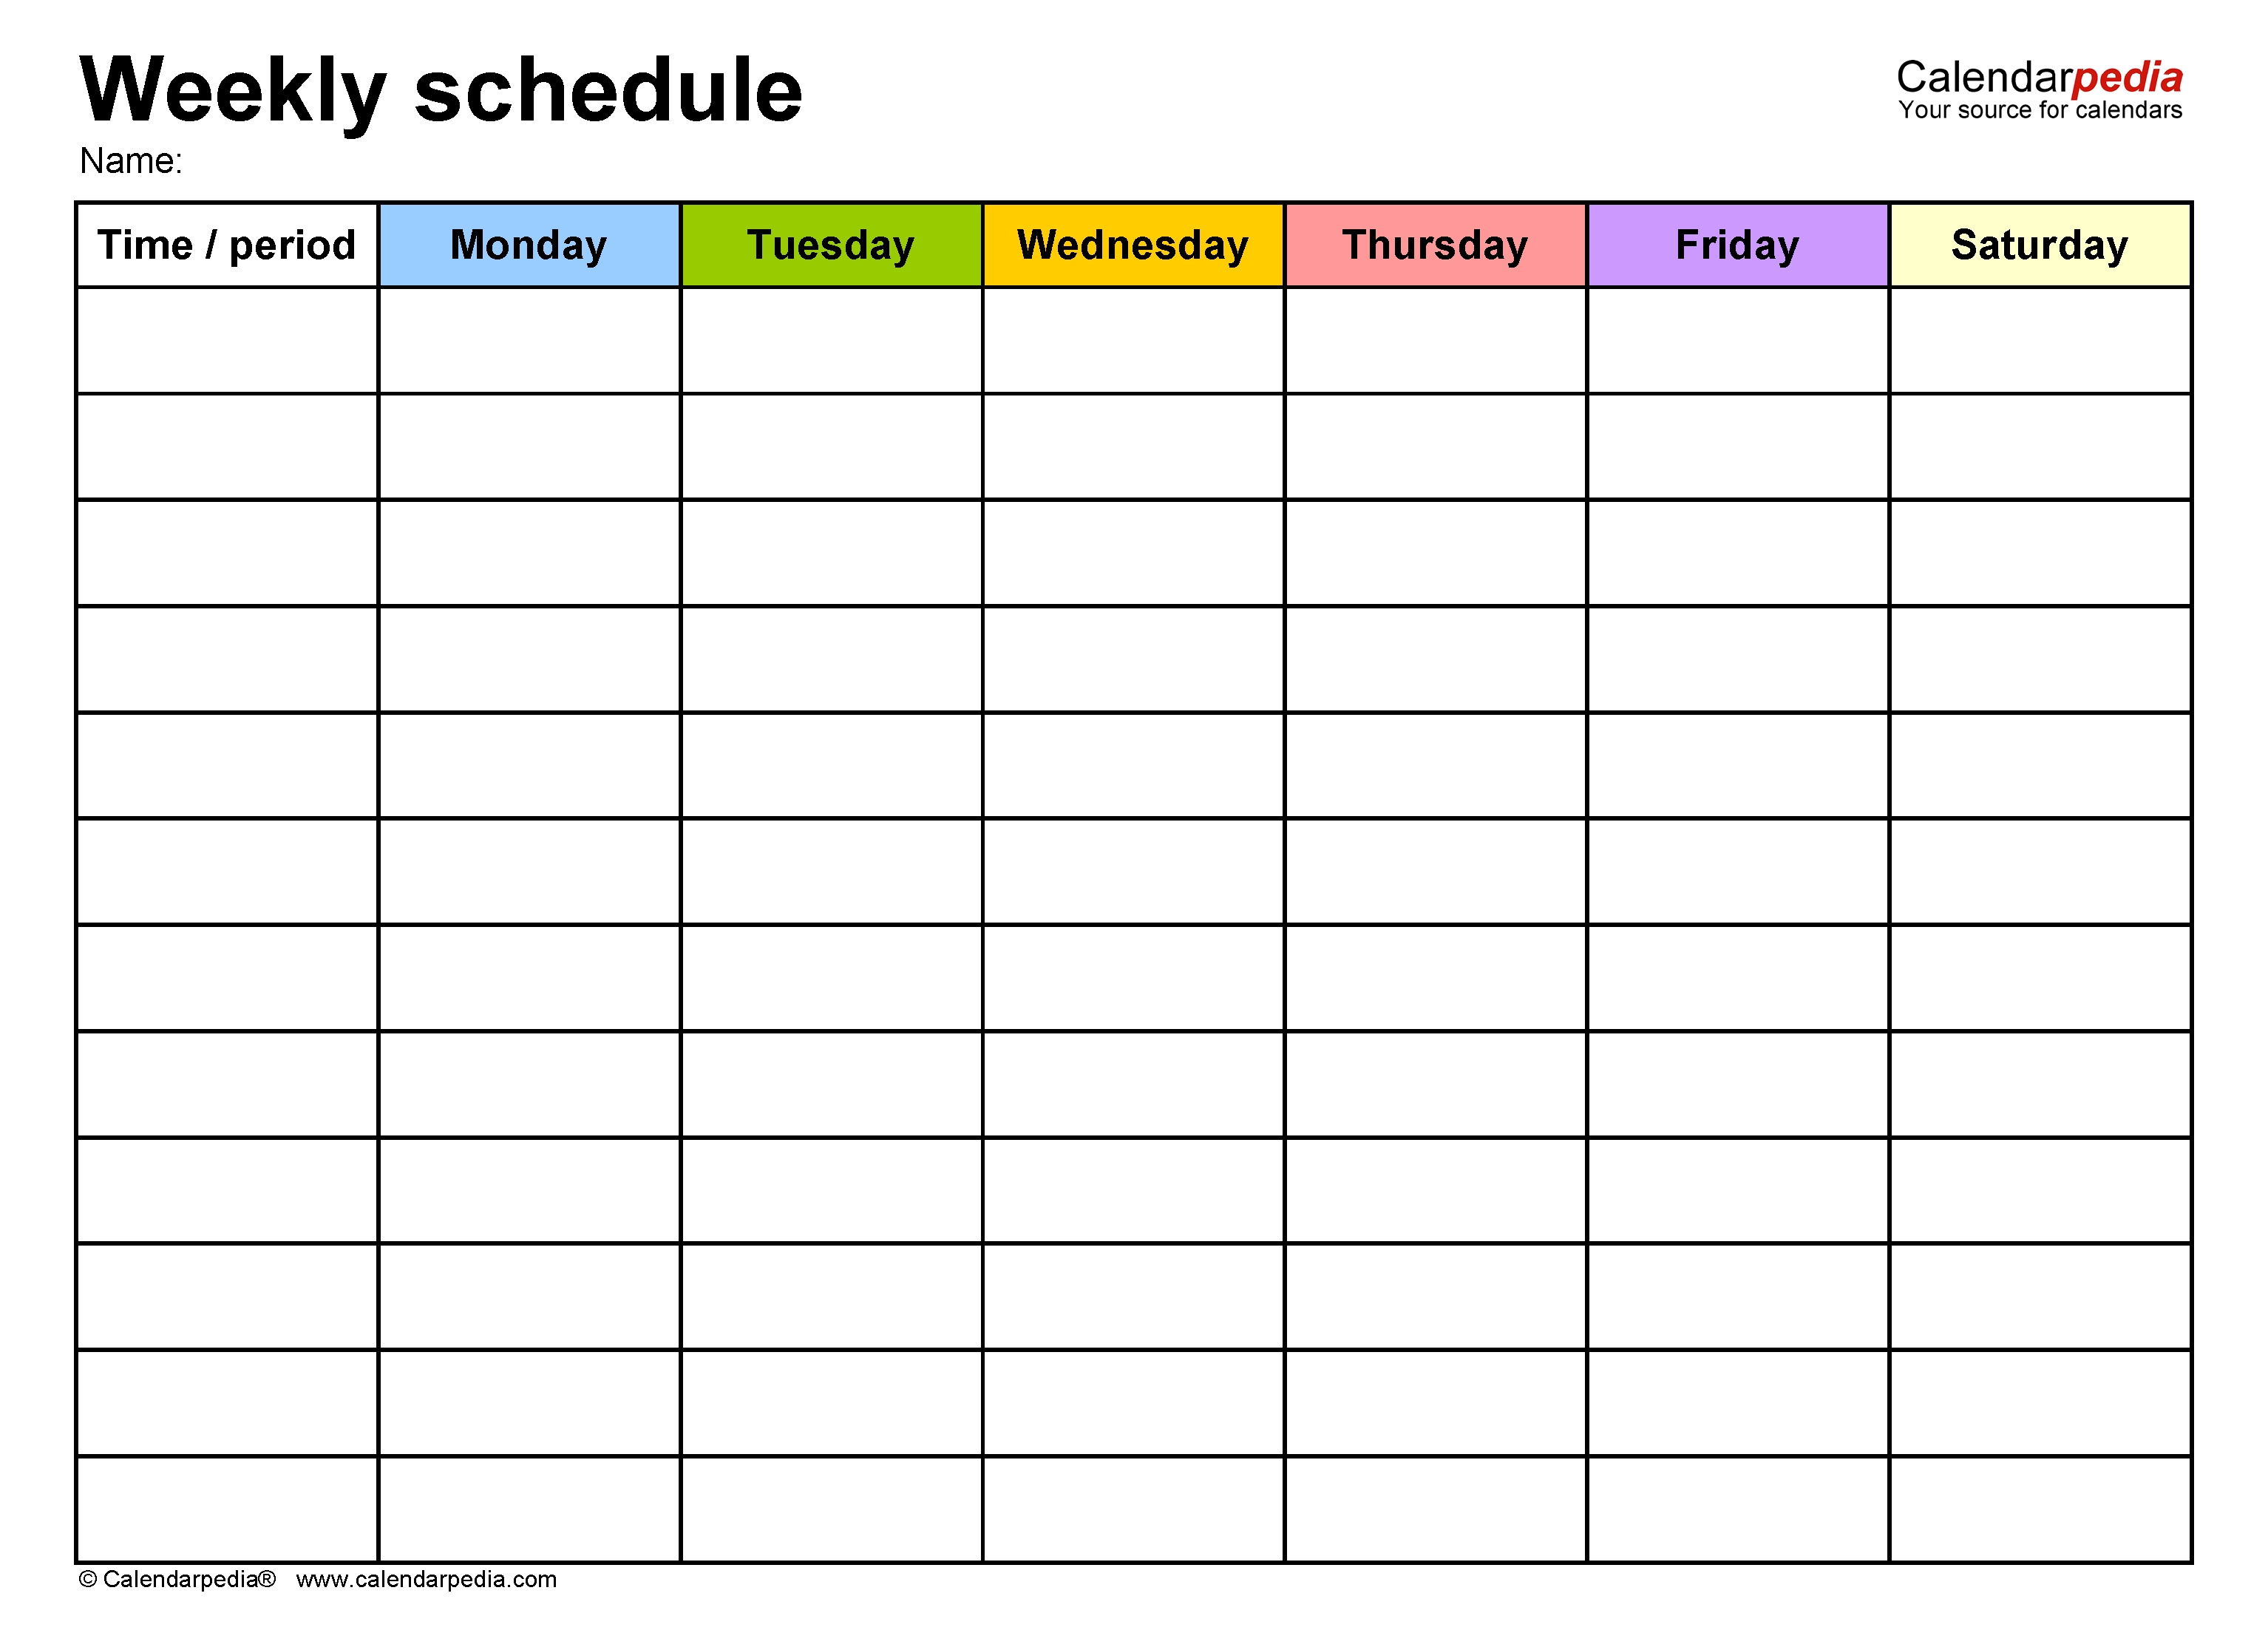 Free Weekly Schedule Templates For Word - 18 Templates-Monday Friday Blank Calendar